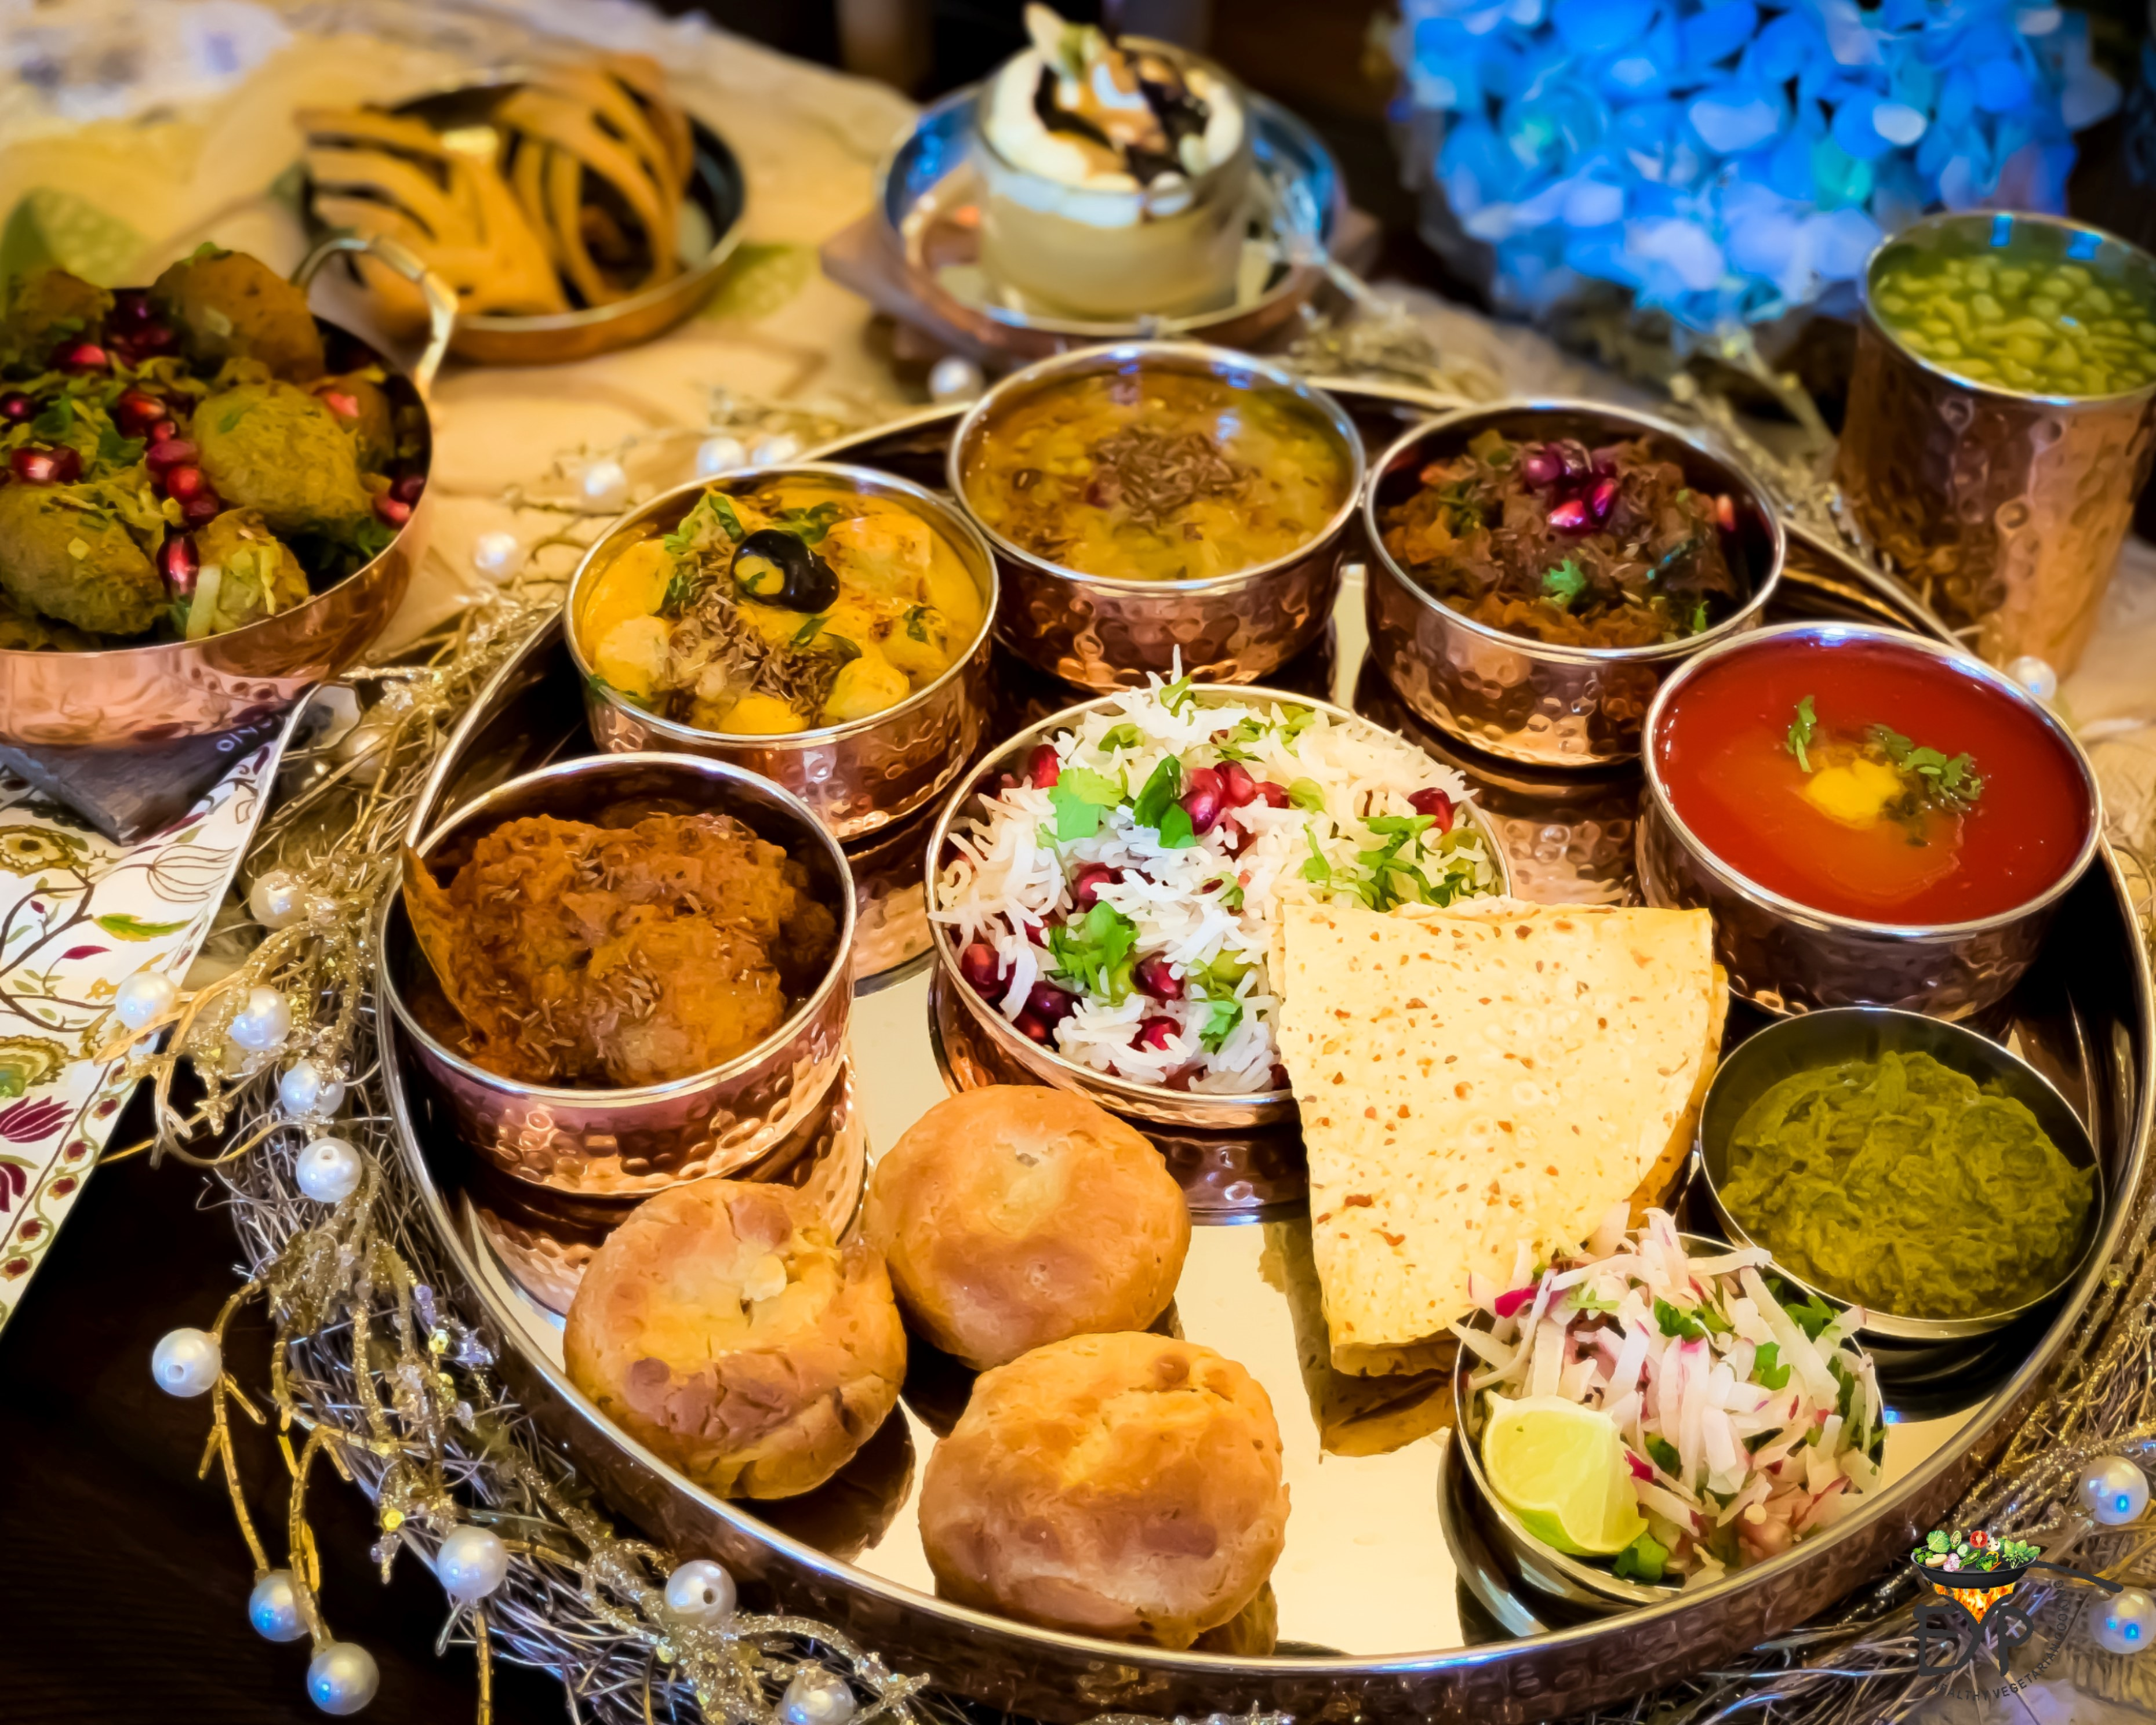 A large platter holding colorful small bowls of food and sauces, plus breads and rice